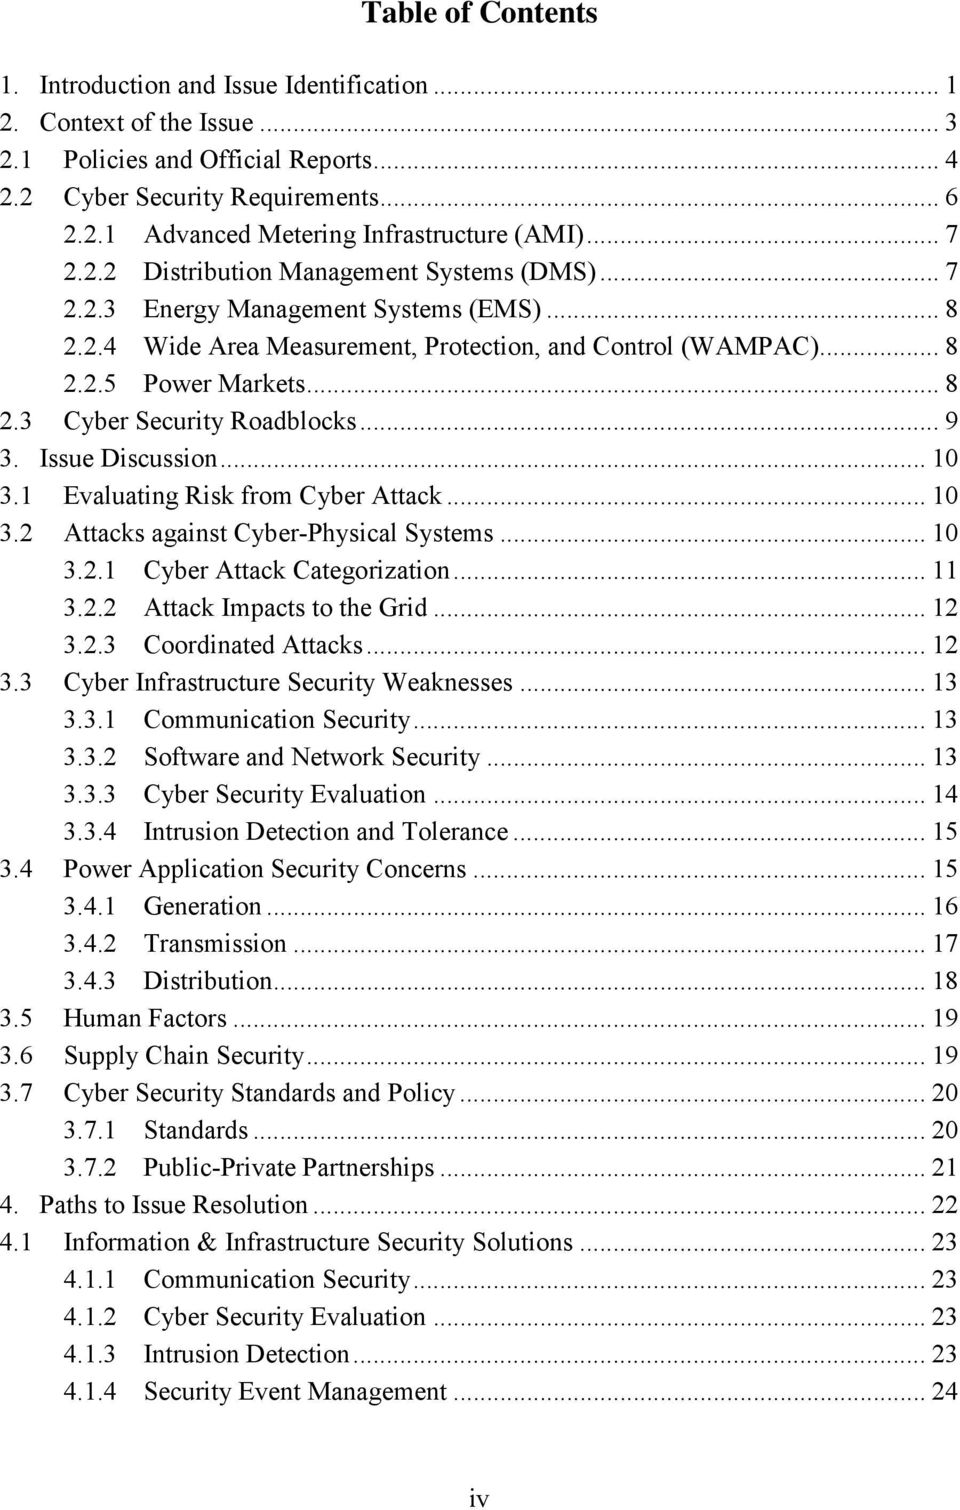 .. 9 3. Issue Discussion... 10 3.1 Evaluating Risk from Cyber Attack... 10 3.2 Attacks against Cyber-Physical Systems... 10 3.2.1 Cyber Attack Categorization... 11 3.2.2 Attack Impacts to the Grid.